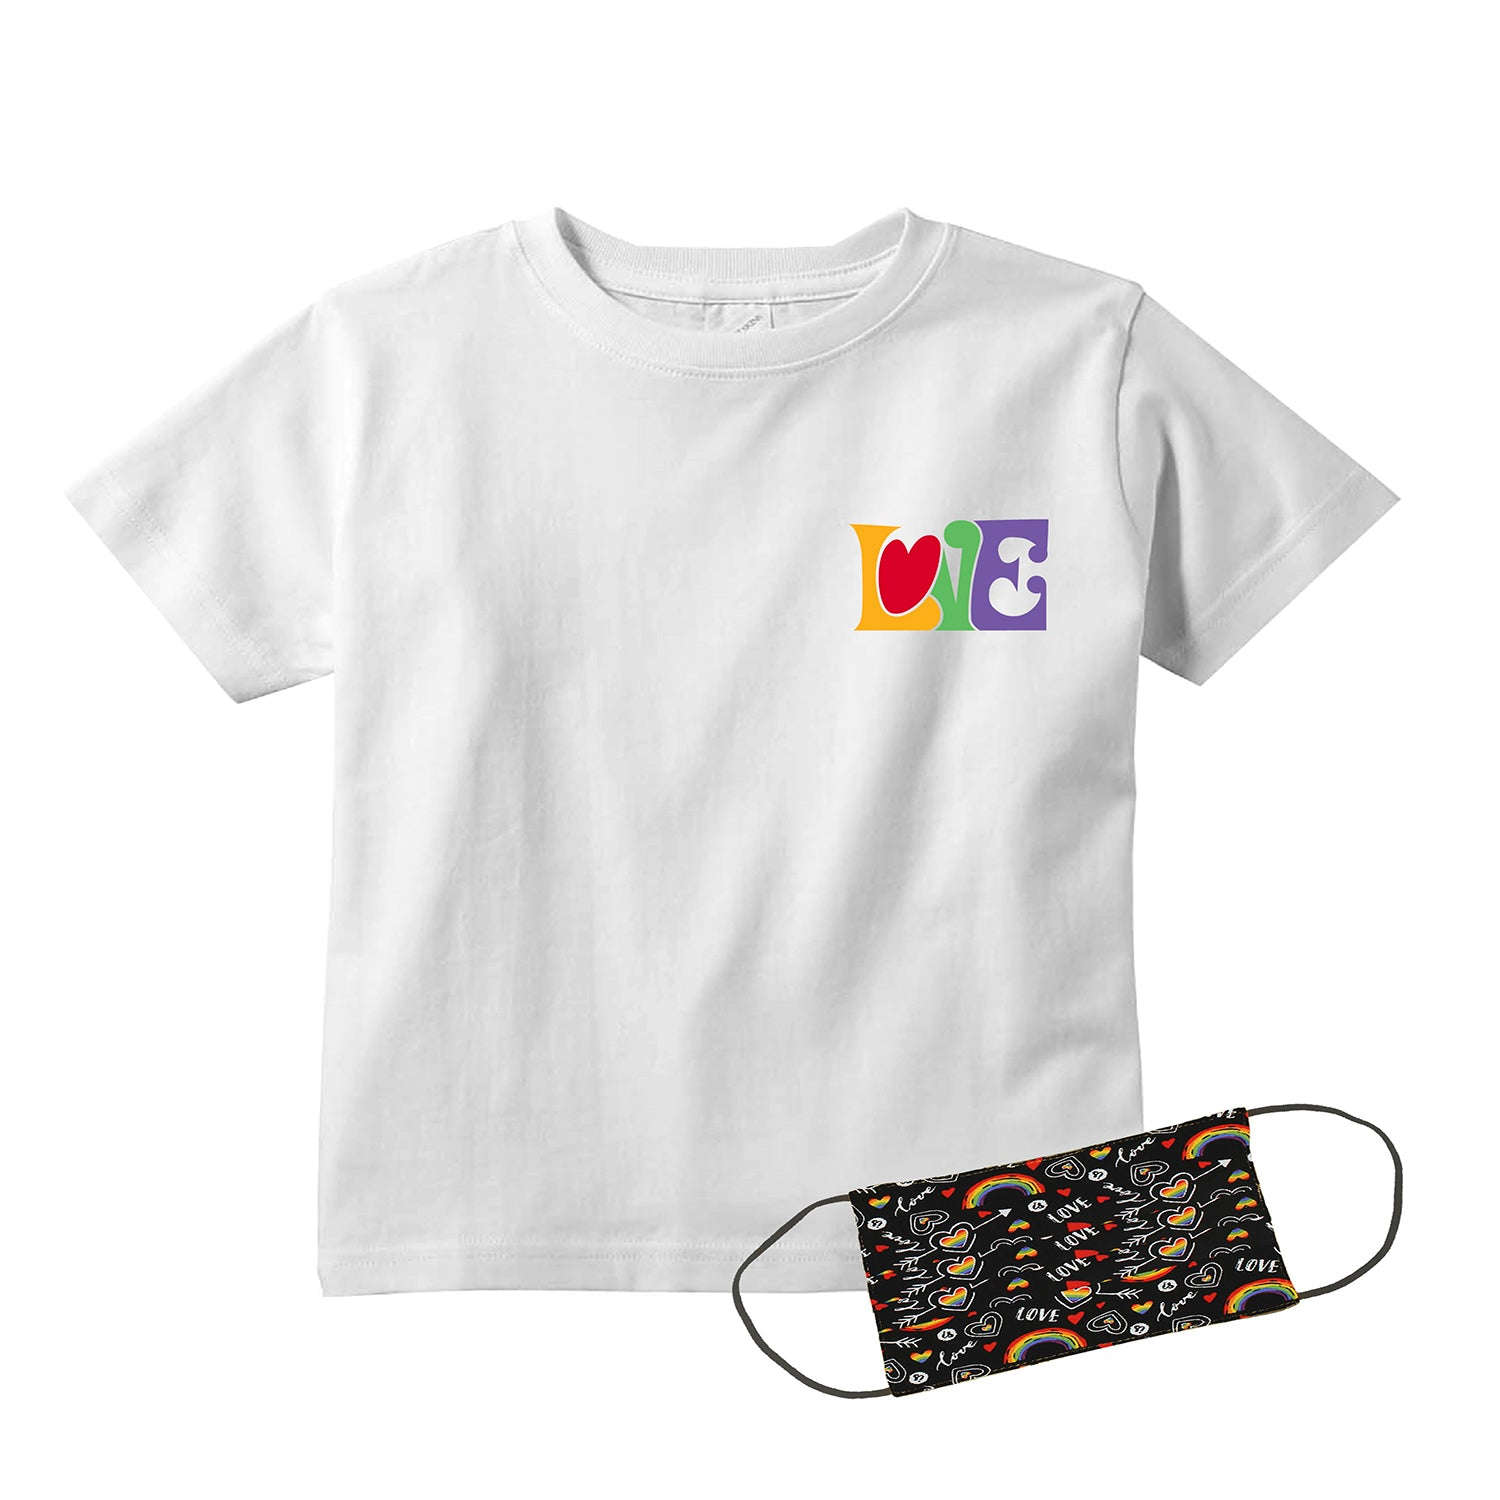 Hippie Love Kids T-Shirt + FREE Love is Love Pride Face Mask